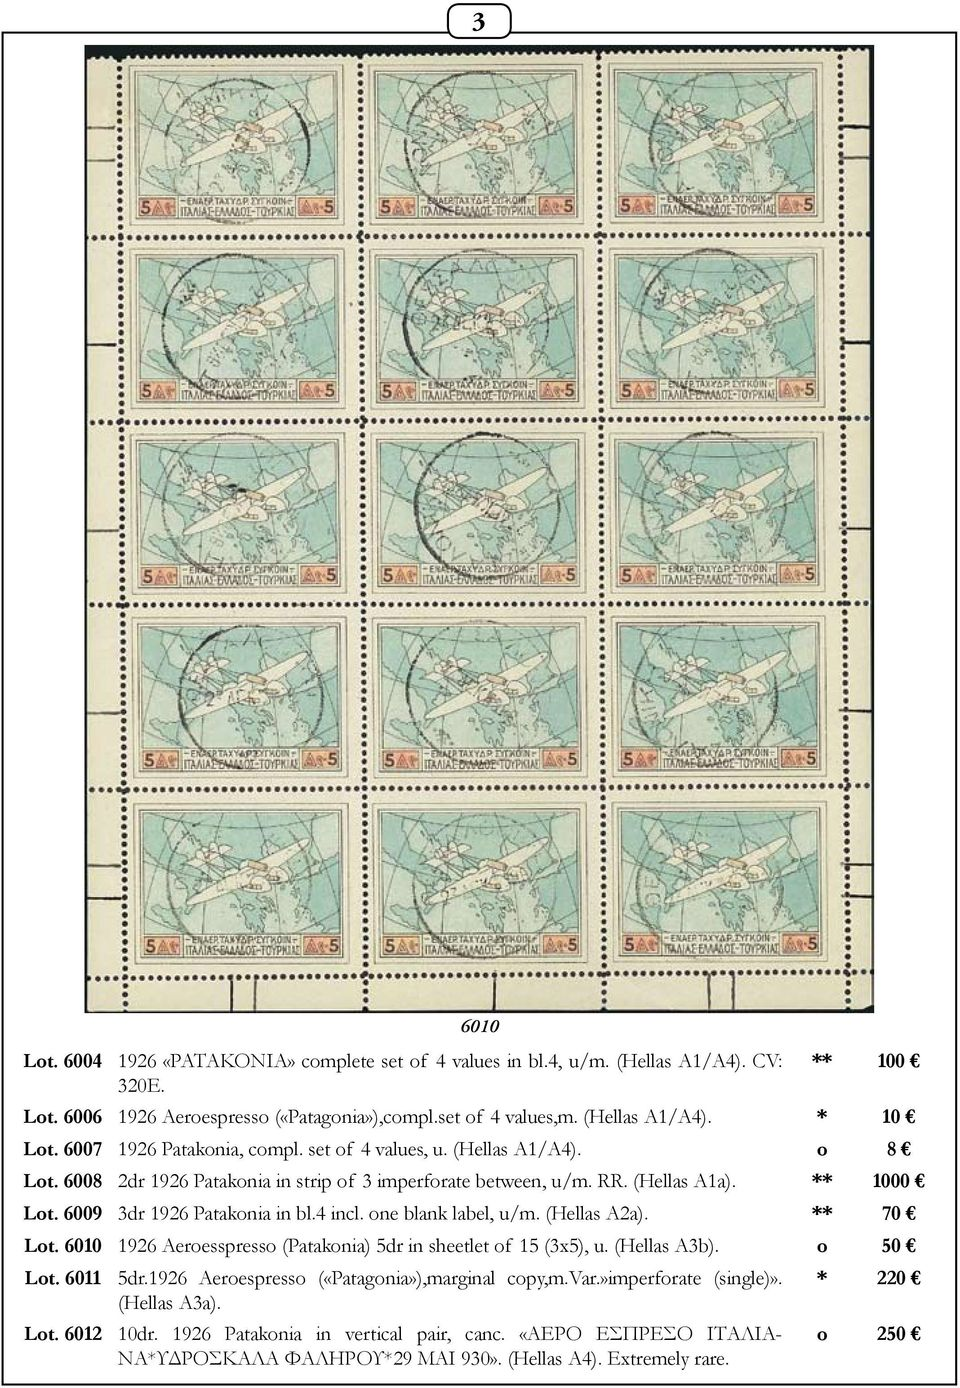 4 incl. one blank label, u/m. (Hellas A2a). ** 70 Lot. 6010 1926 Aeroesspresso (Patakonia) 5dr in sheetlet of 15 (3x5), u. (Hellas A3b). o 50 Lot. 6011 5dr.